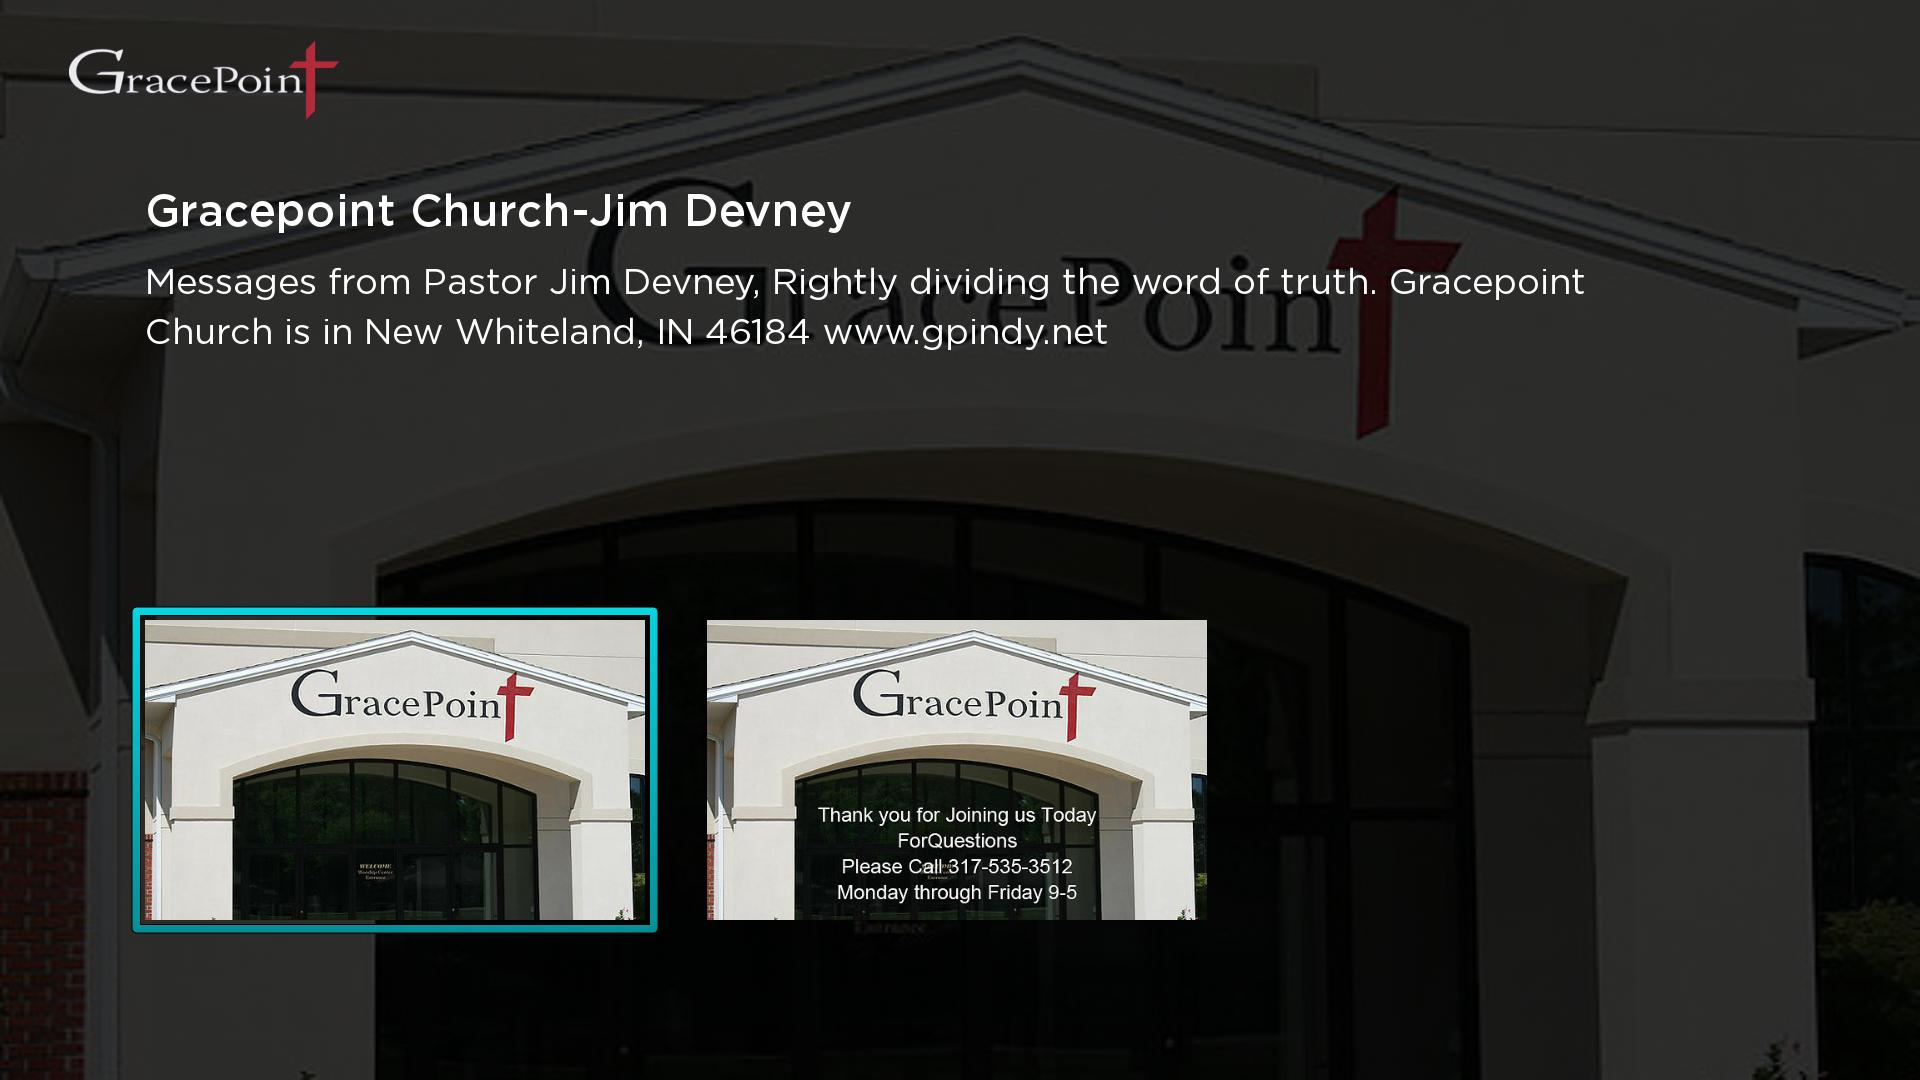 Gracepoint Church - Jim Devney Screenshot 001